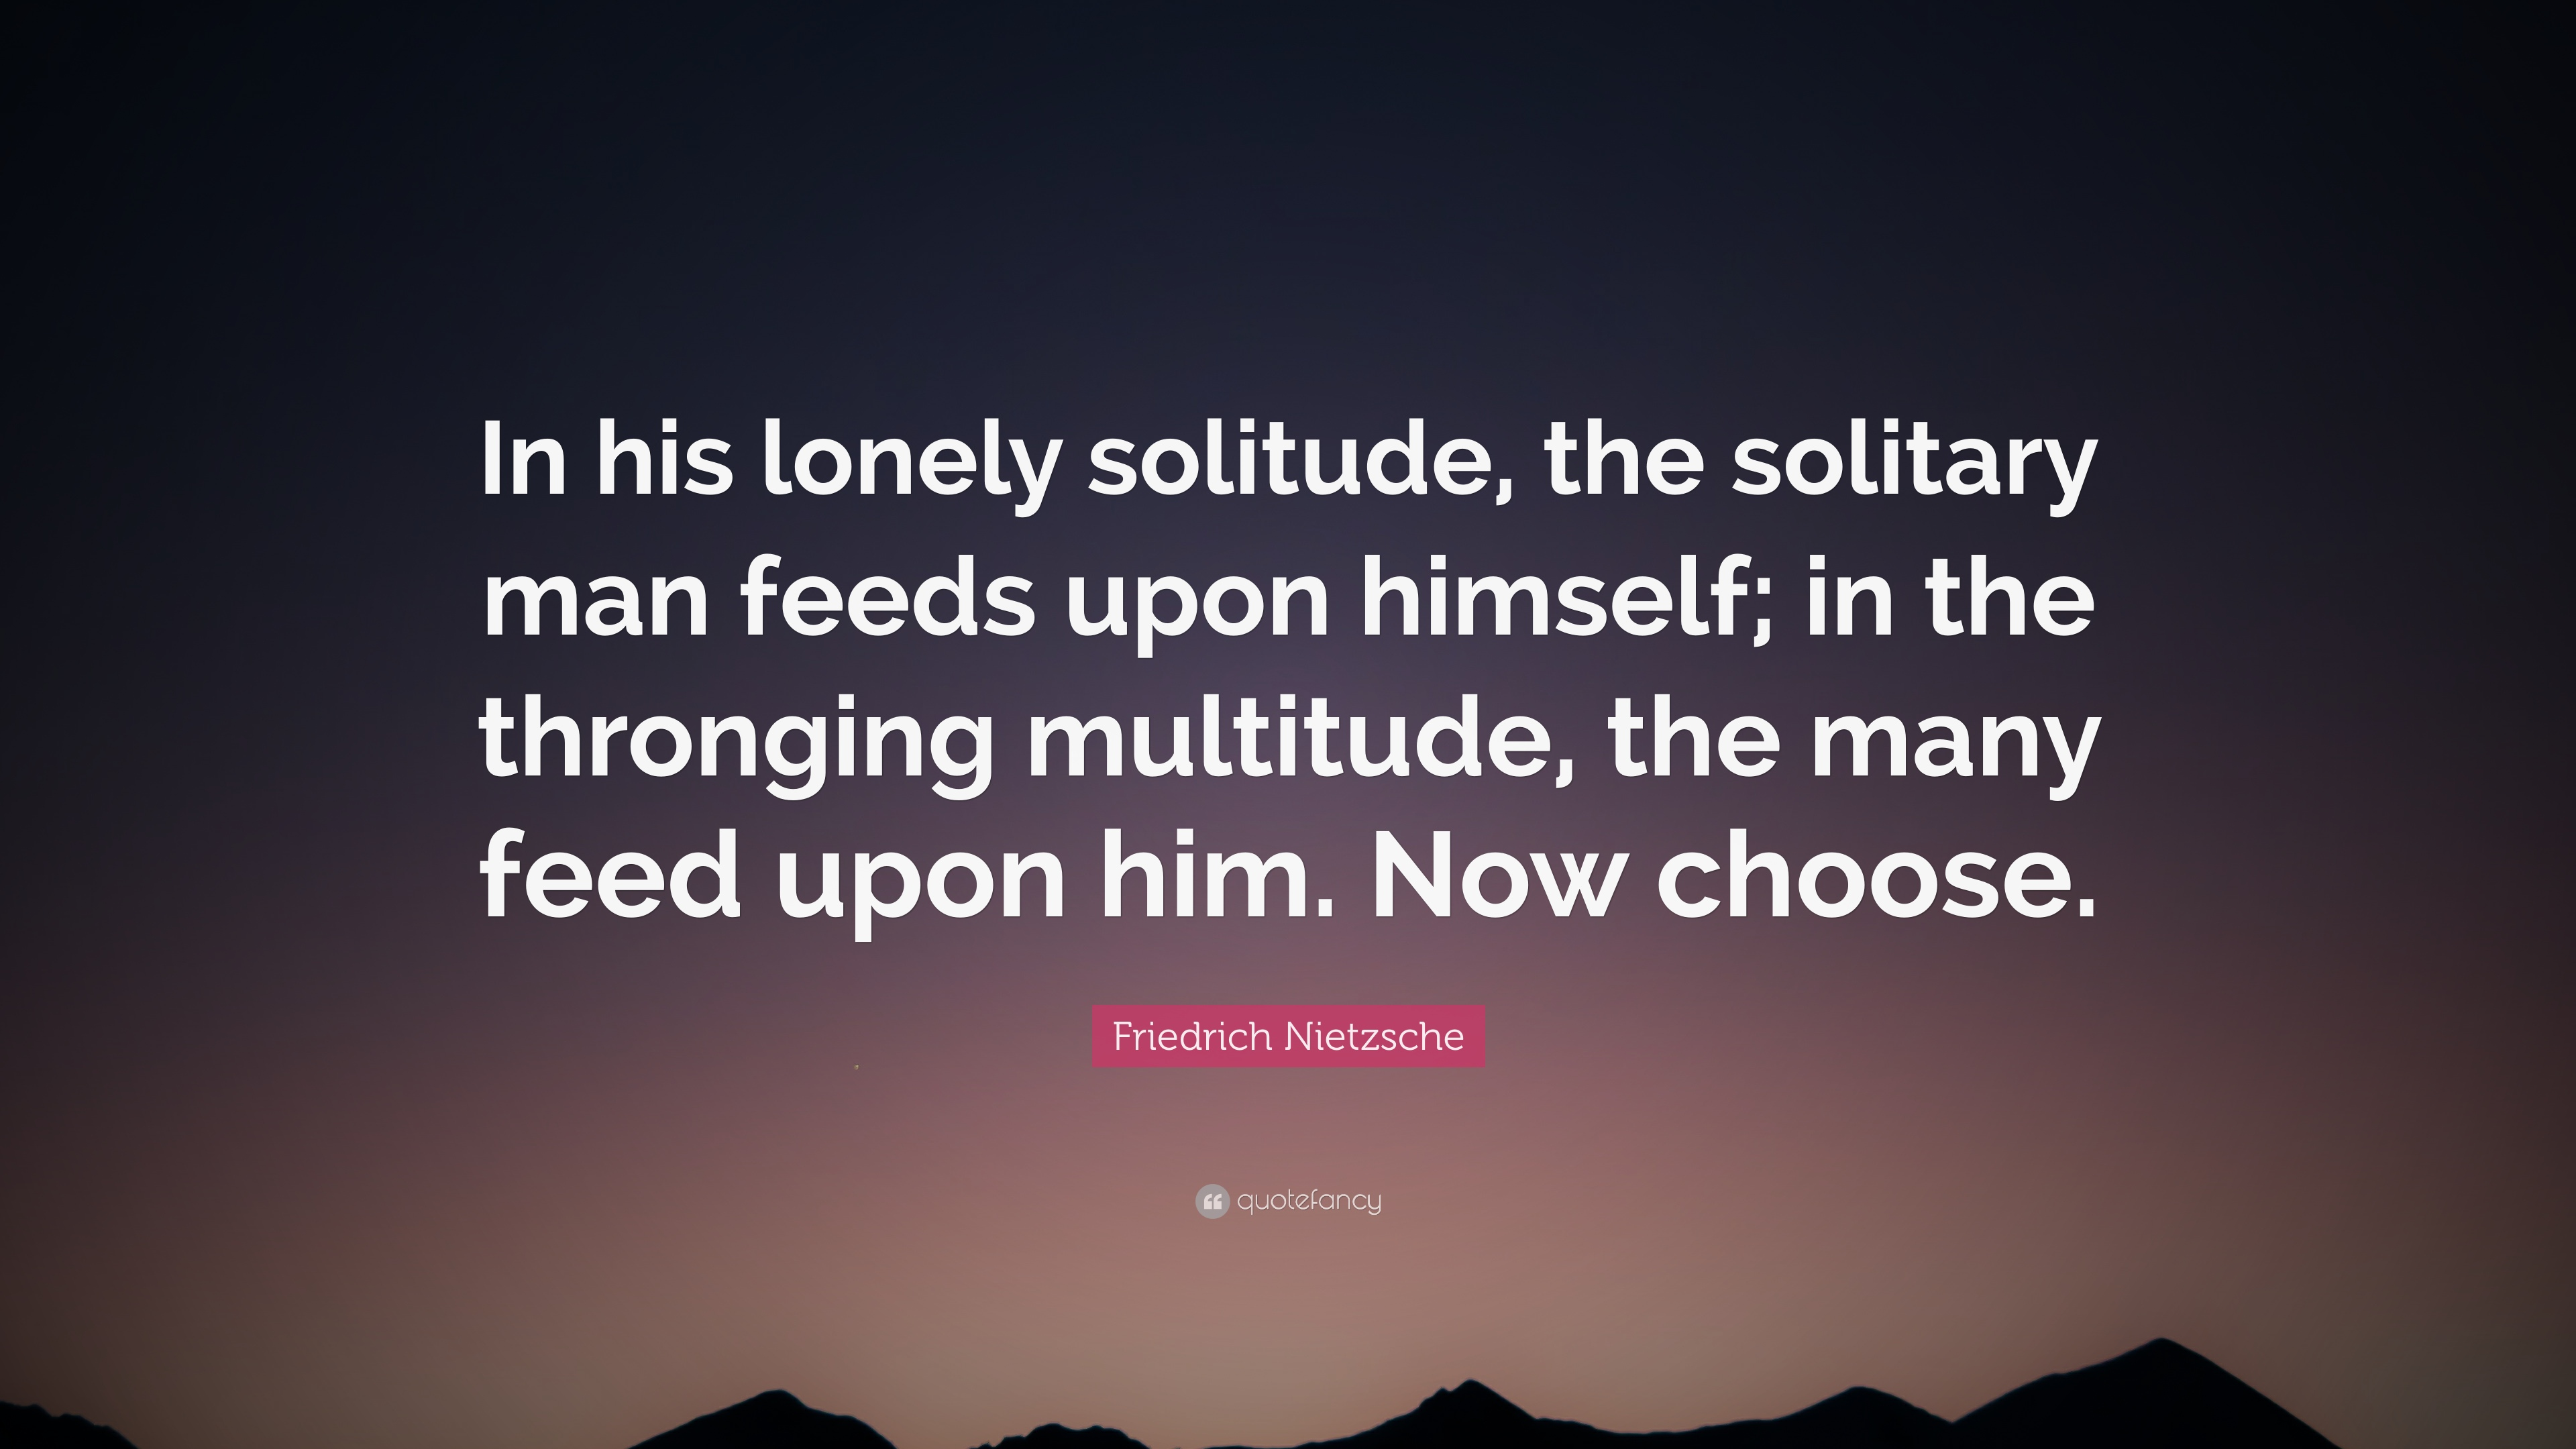 1950206-Friedrich-Nietzsche-Quote-In-his-lonely-solitude-the-solitary-man.jpg